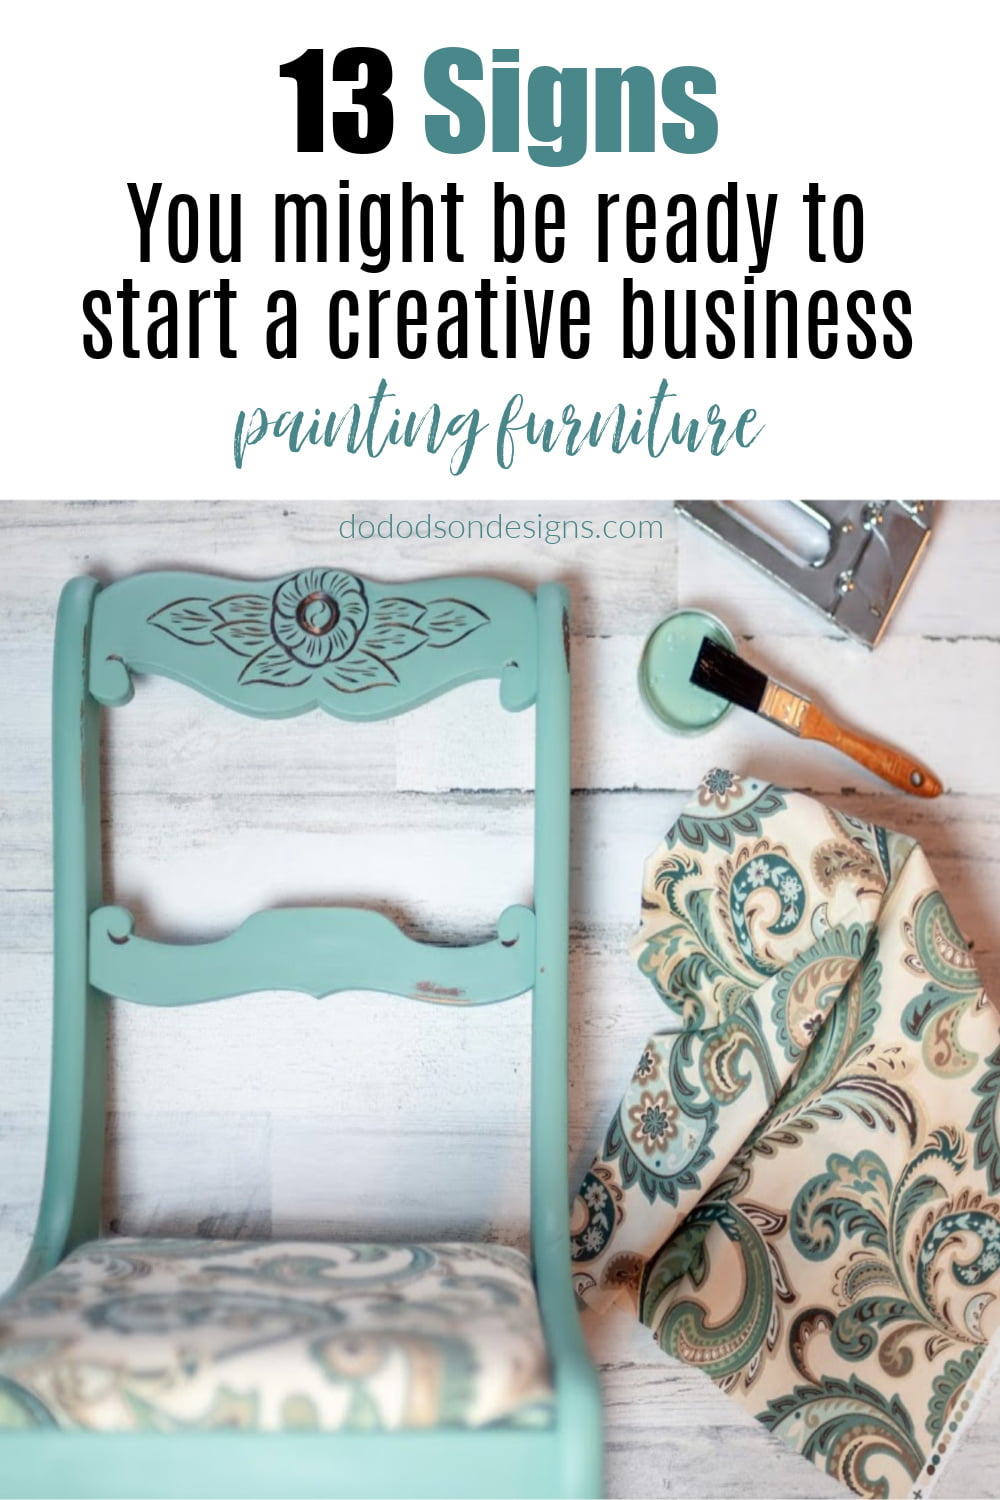 When To Start A Creative Business Furniture Painting